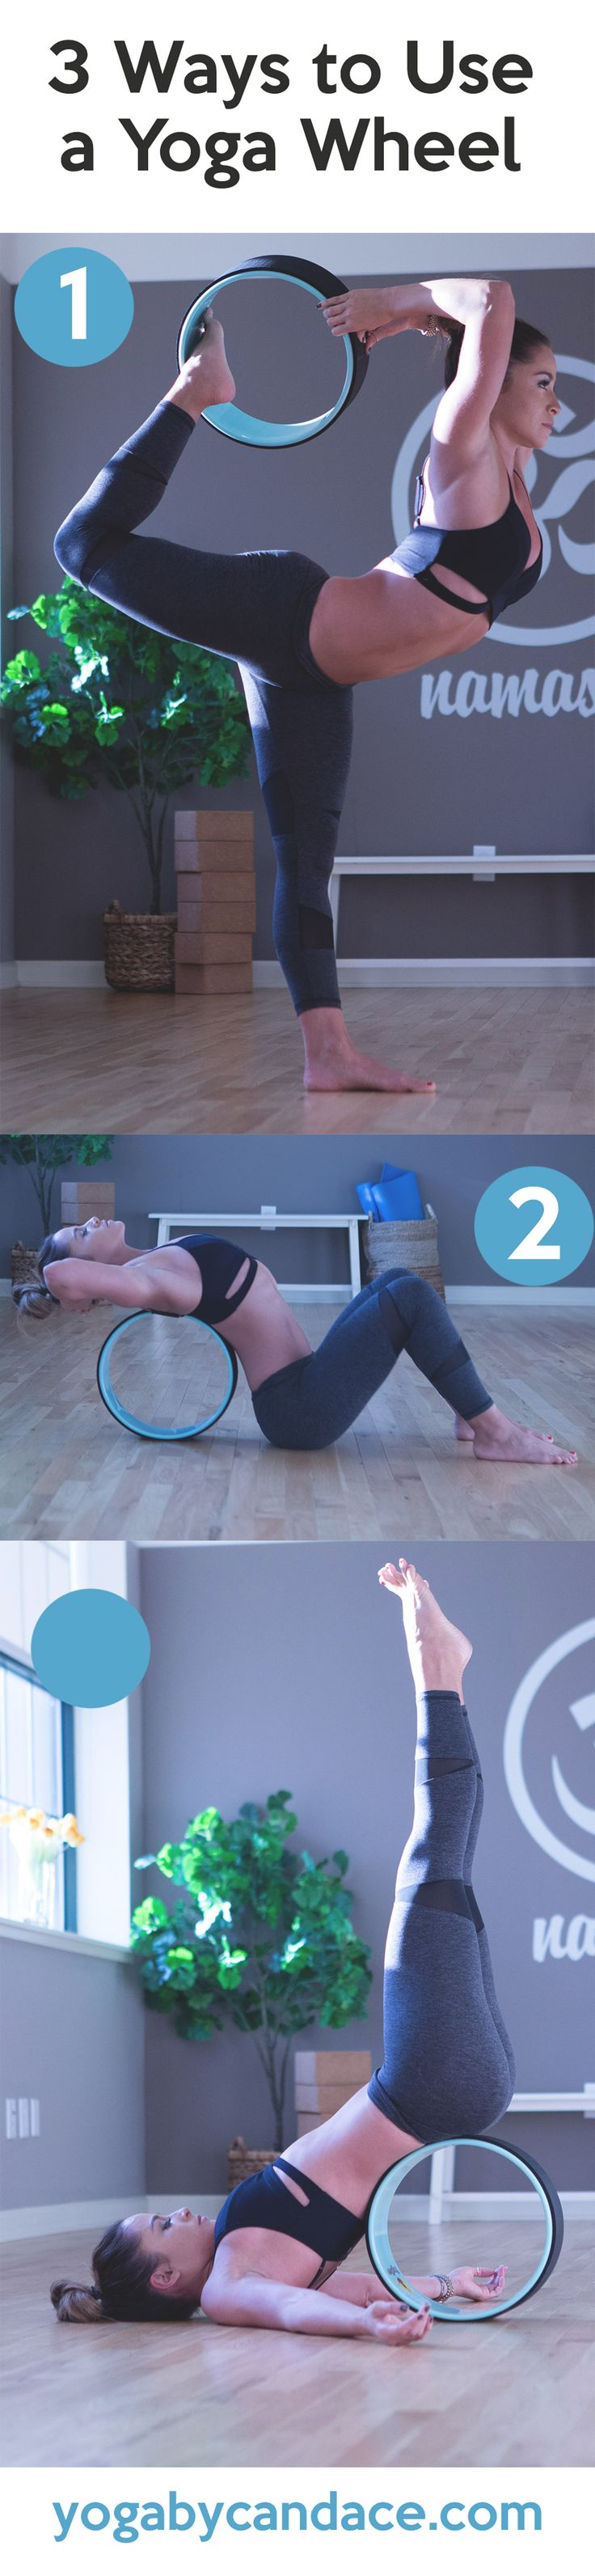 3 Ways to Use a Yoga Wheel http://amzn.to/2stx5H7